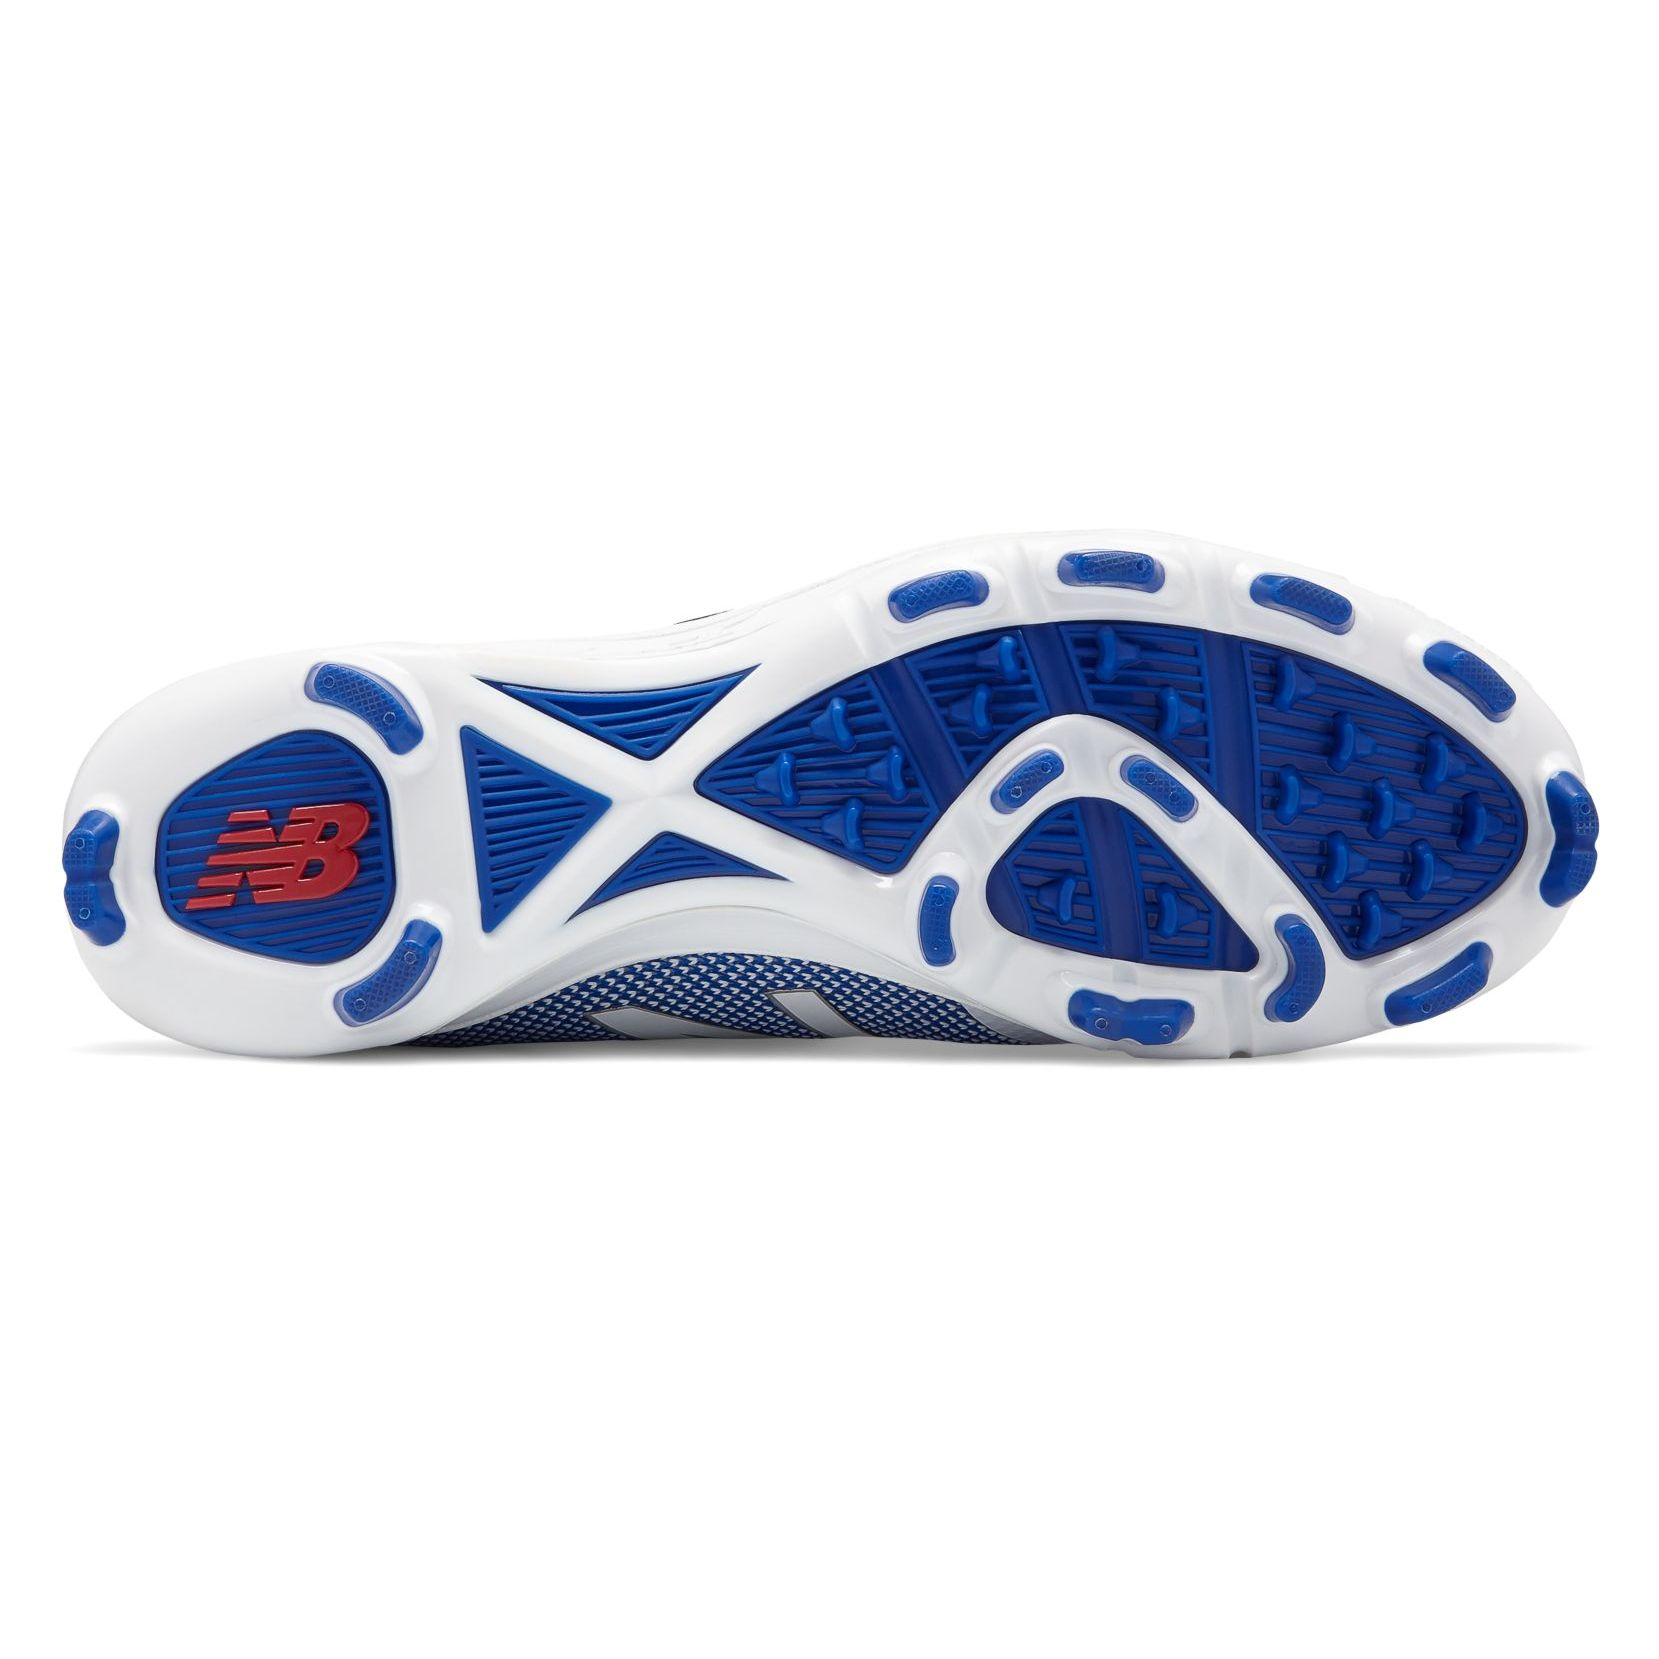 los angeles c482a ec44e ... Royal Blue with White TPU Molded Cleat. click on thumbnail to zoom